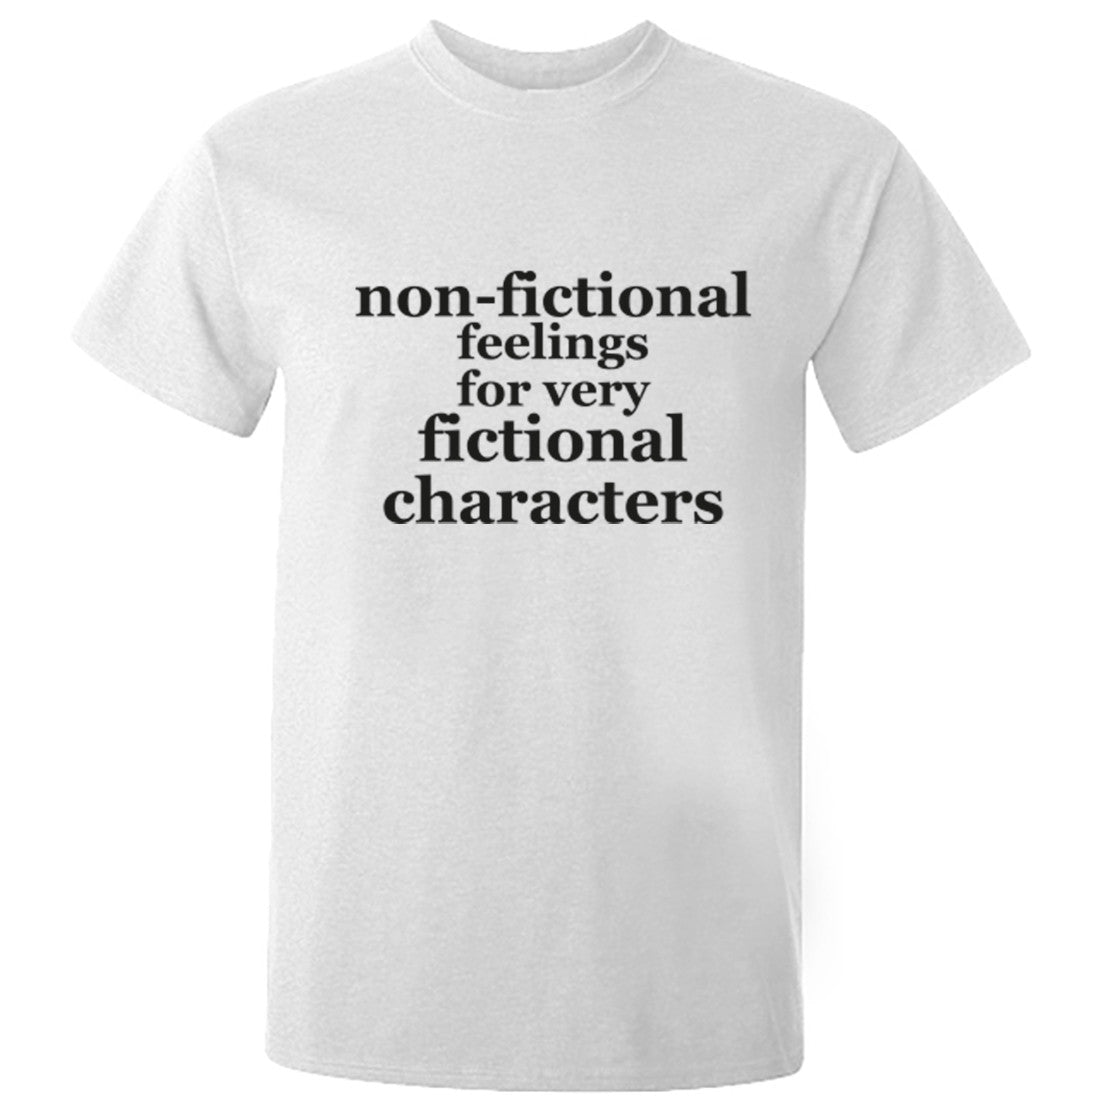 Non-Fictional Feelings For Very Fictional Characters Unisex Fit T-Shirt K0698 - Illustrated Identity Ltd.